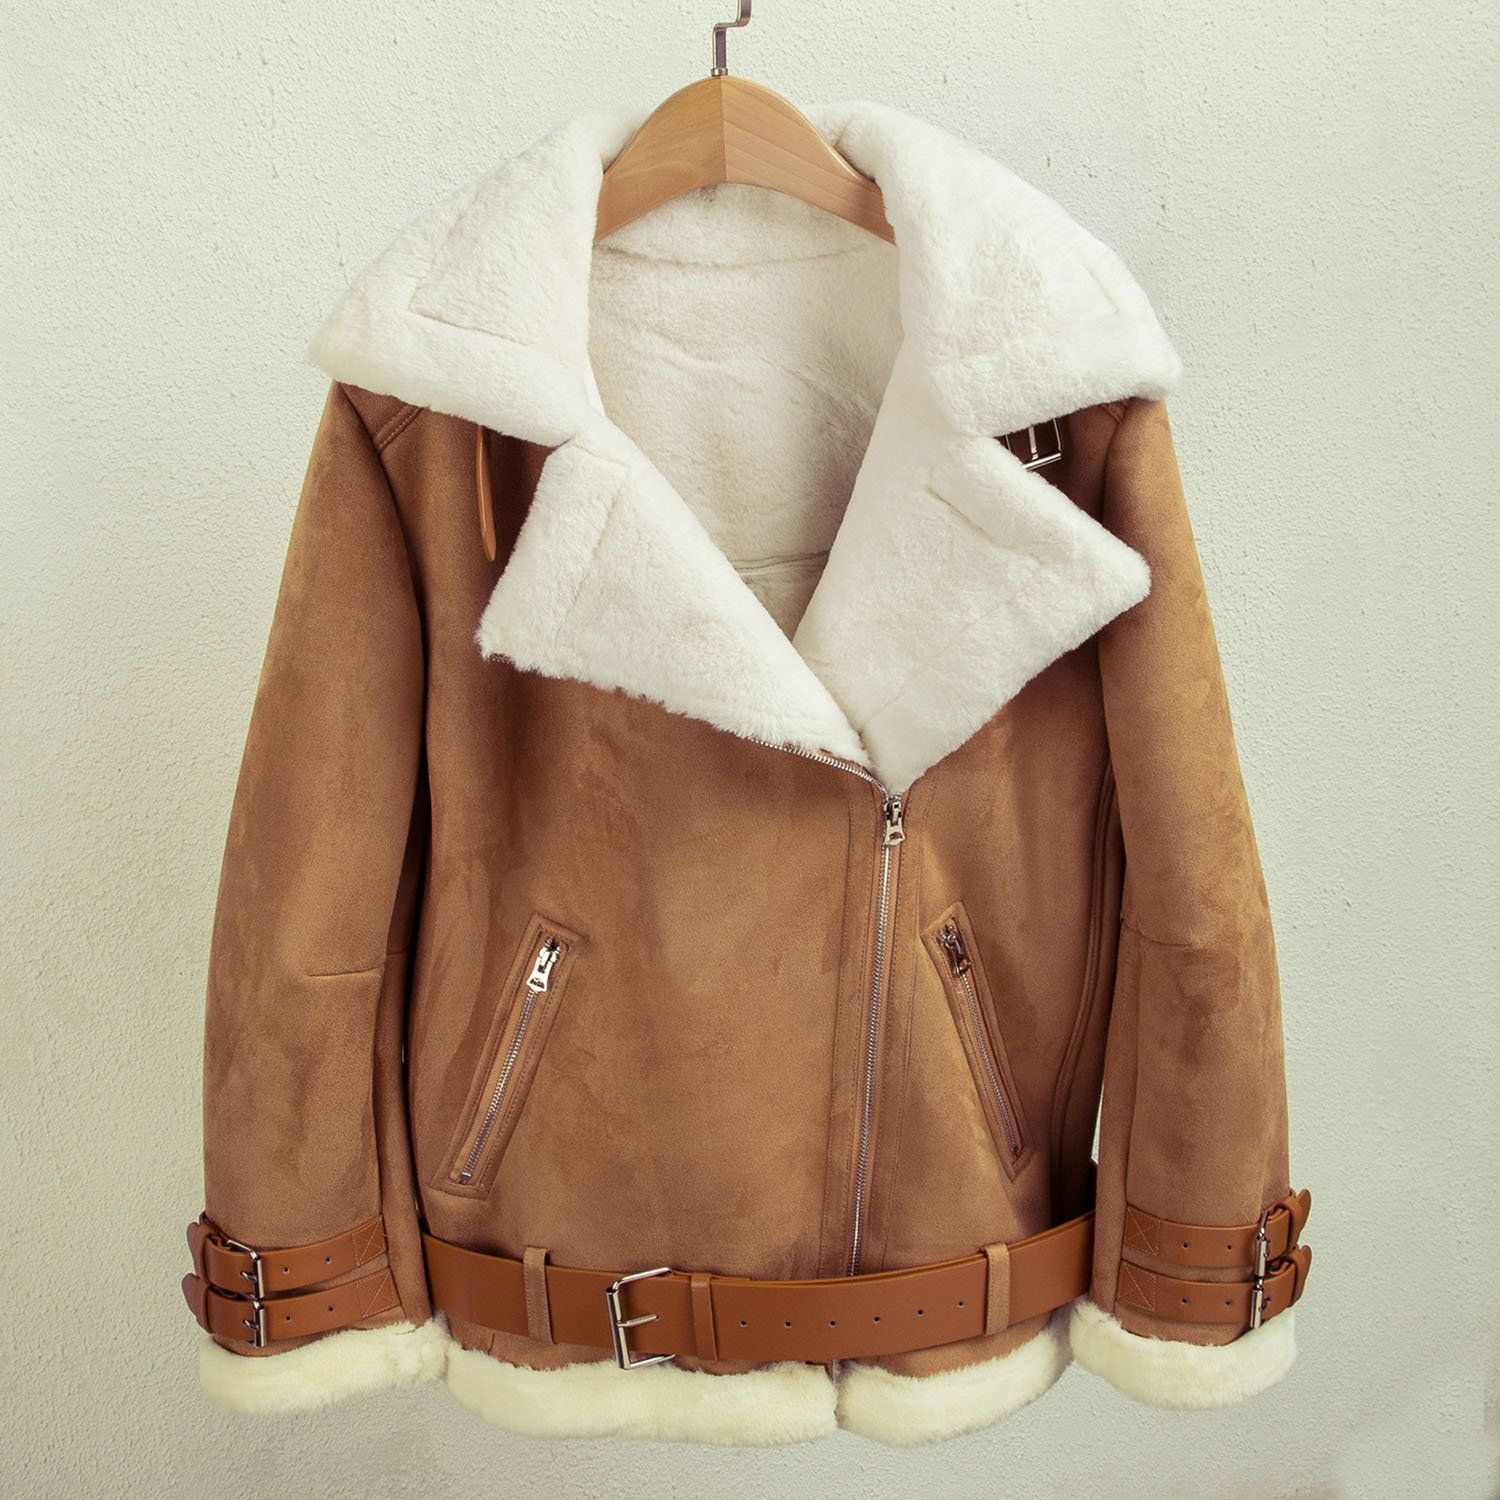 Oversized Faux Fur Moto Bike Jacket Faux shearling